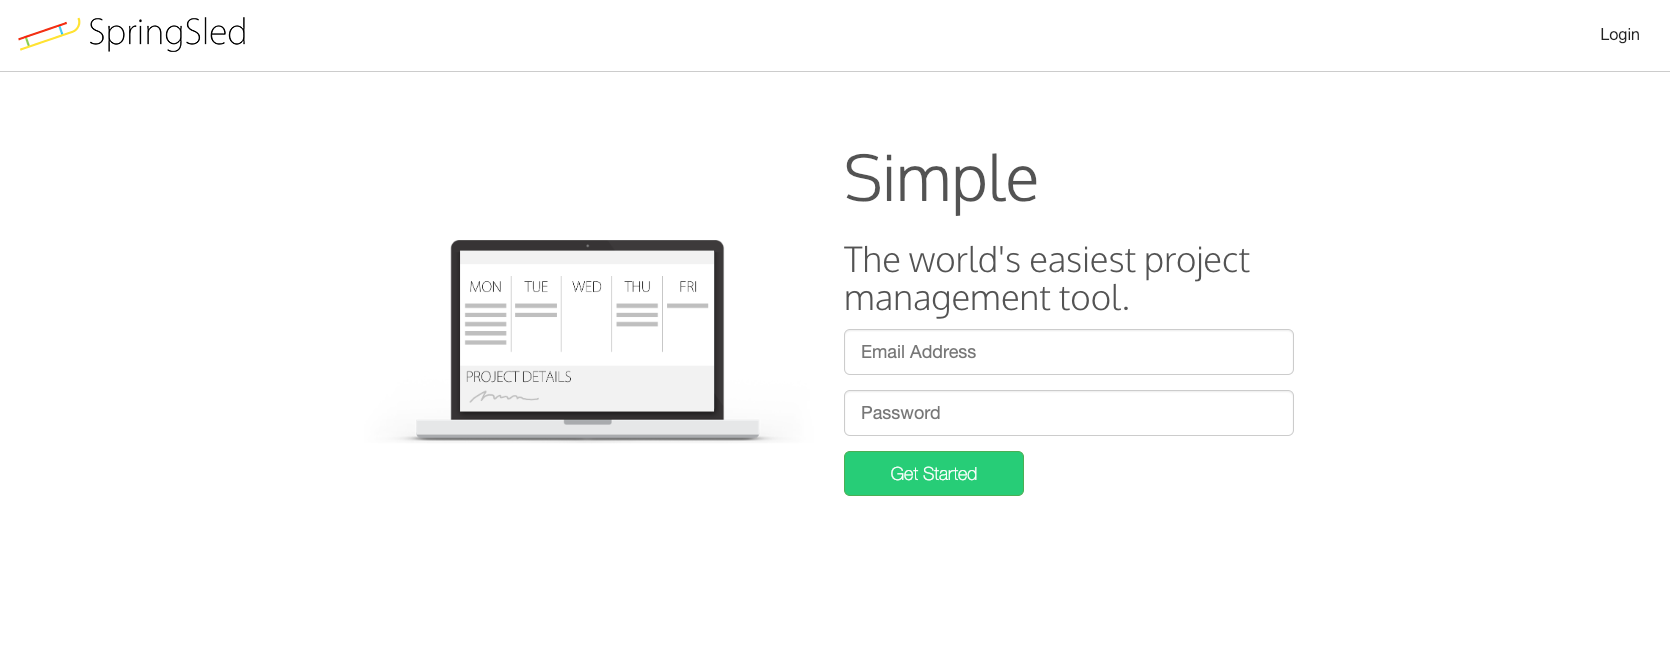 Ask These 4 Questions to Design a Great SaaS Website